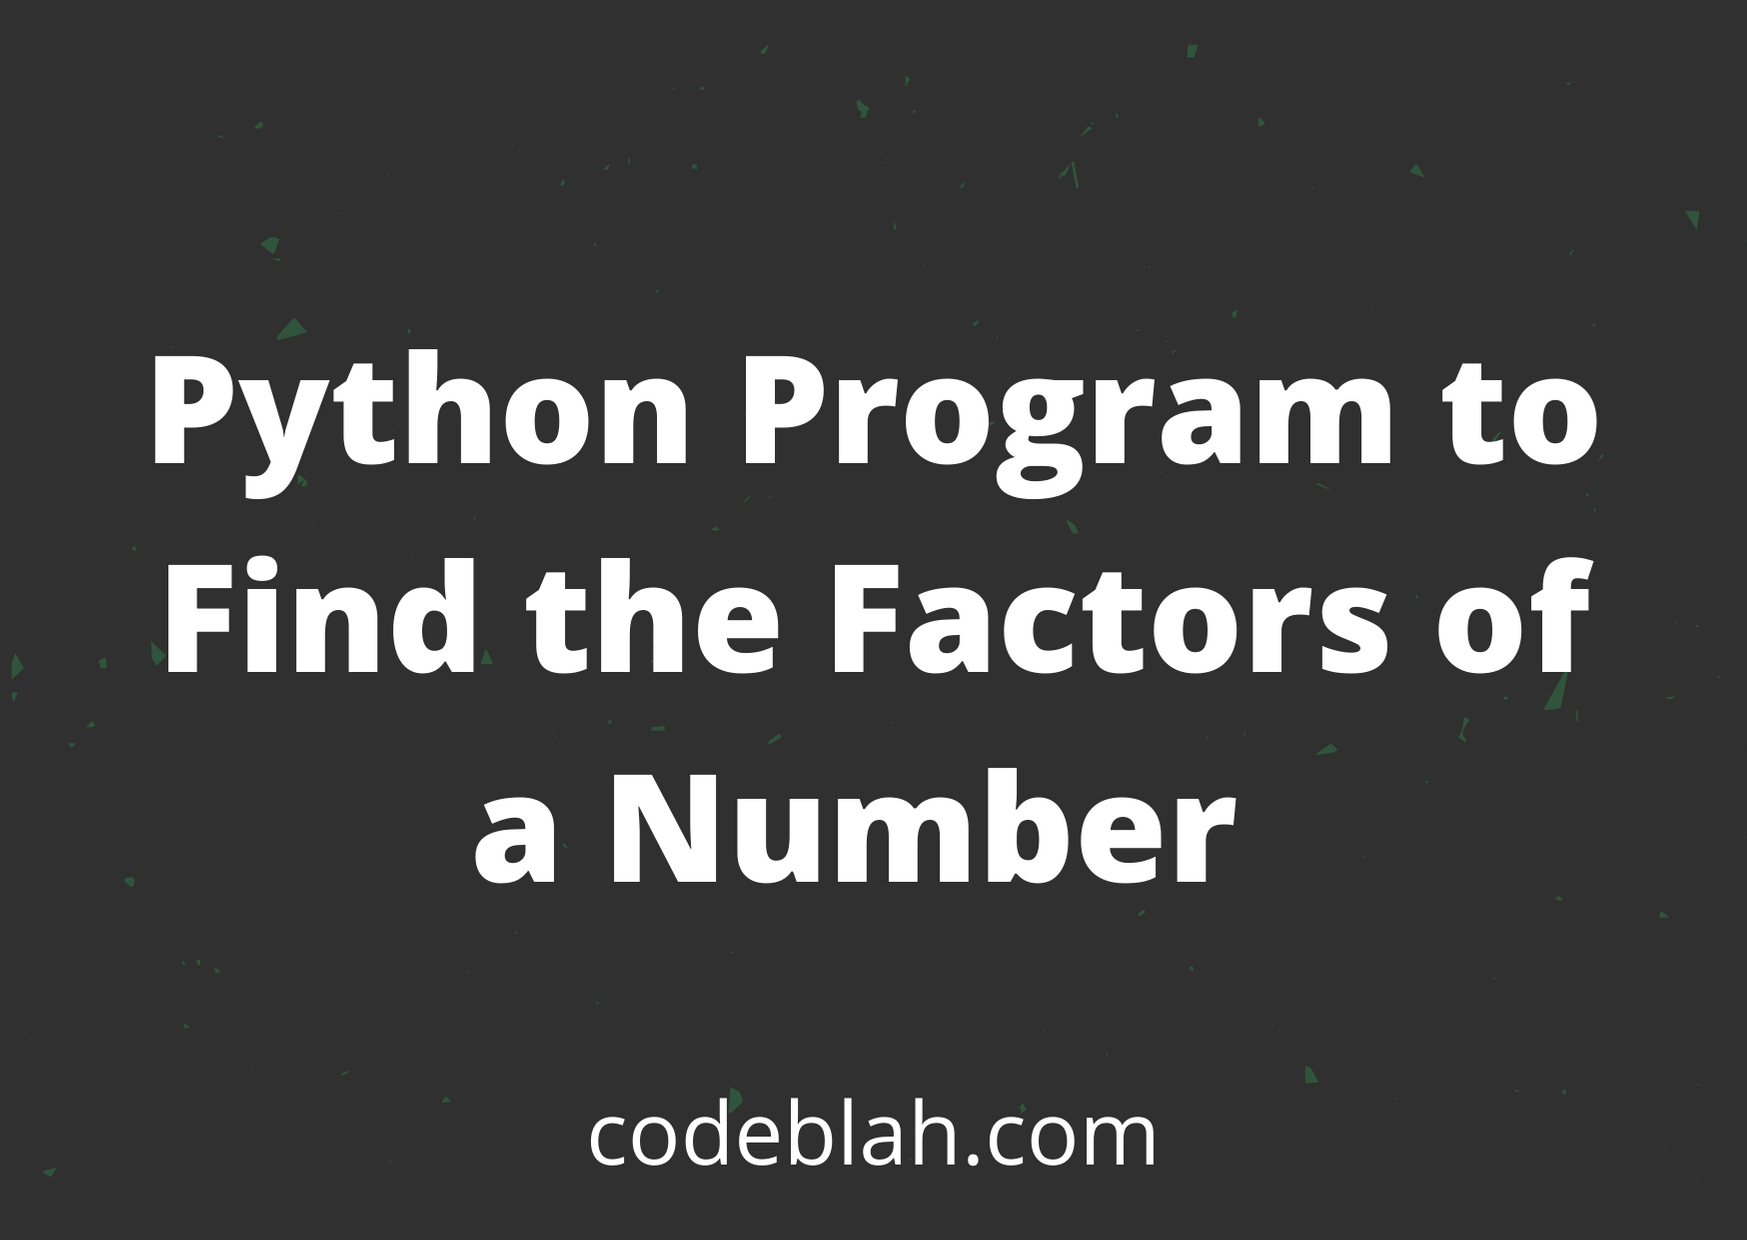 Python Program to Find the Factors of a Number